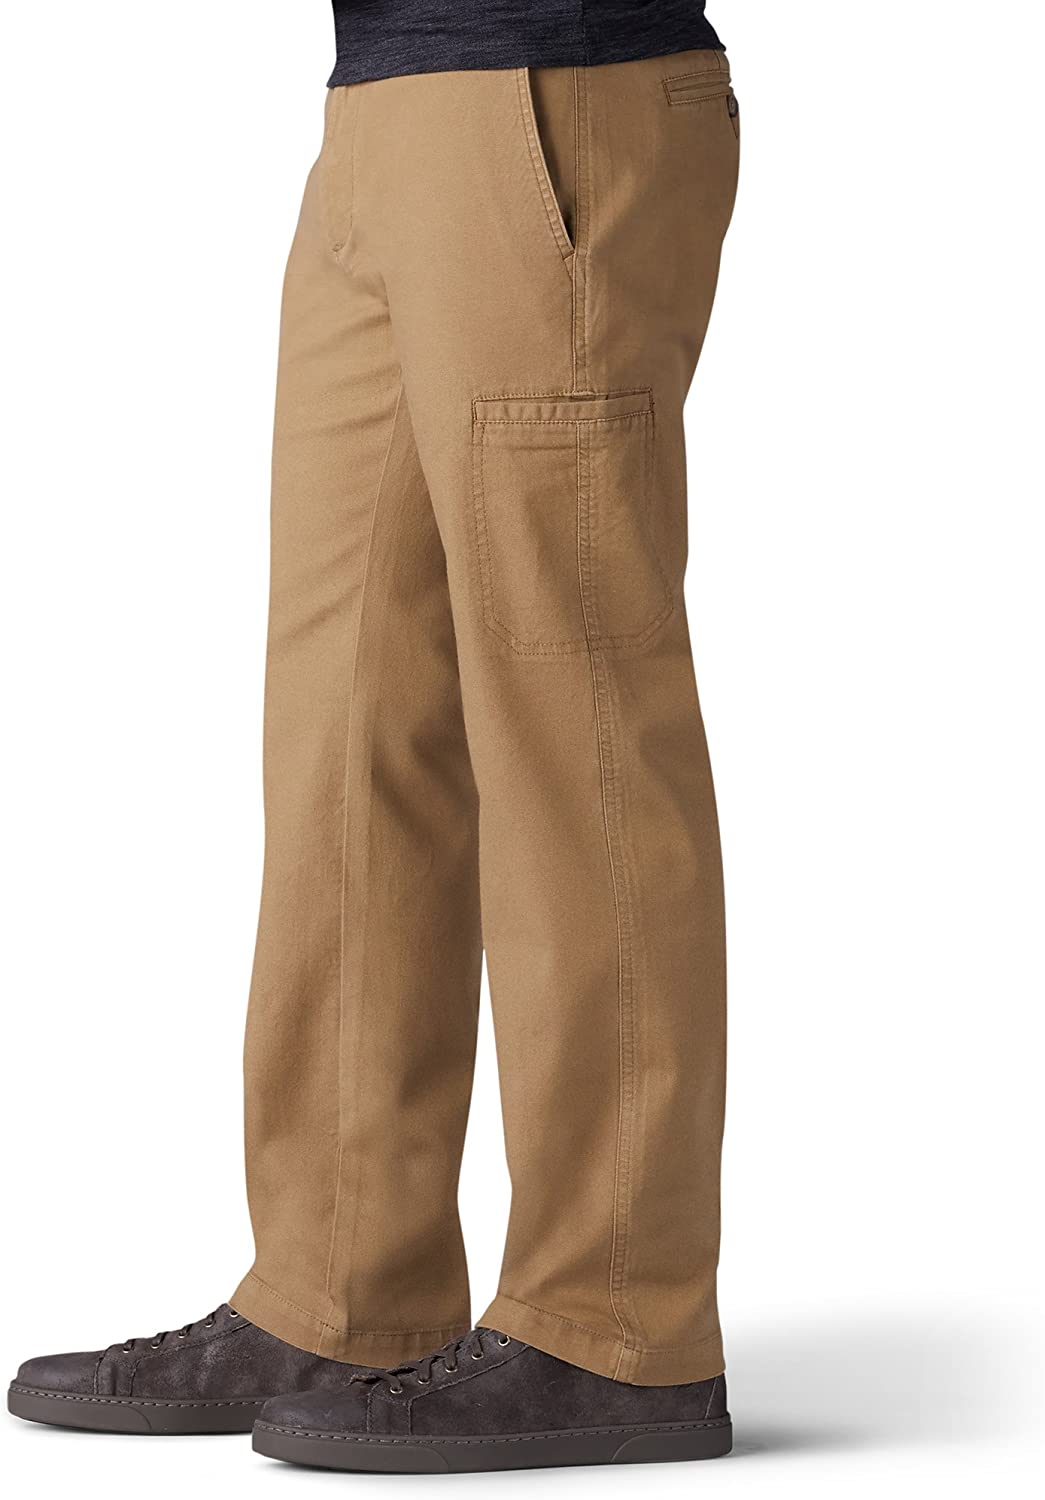 LEE Mens Performance Series Extreme Comfort Cargo Pant